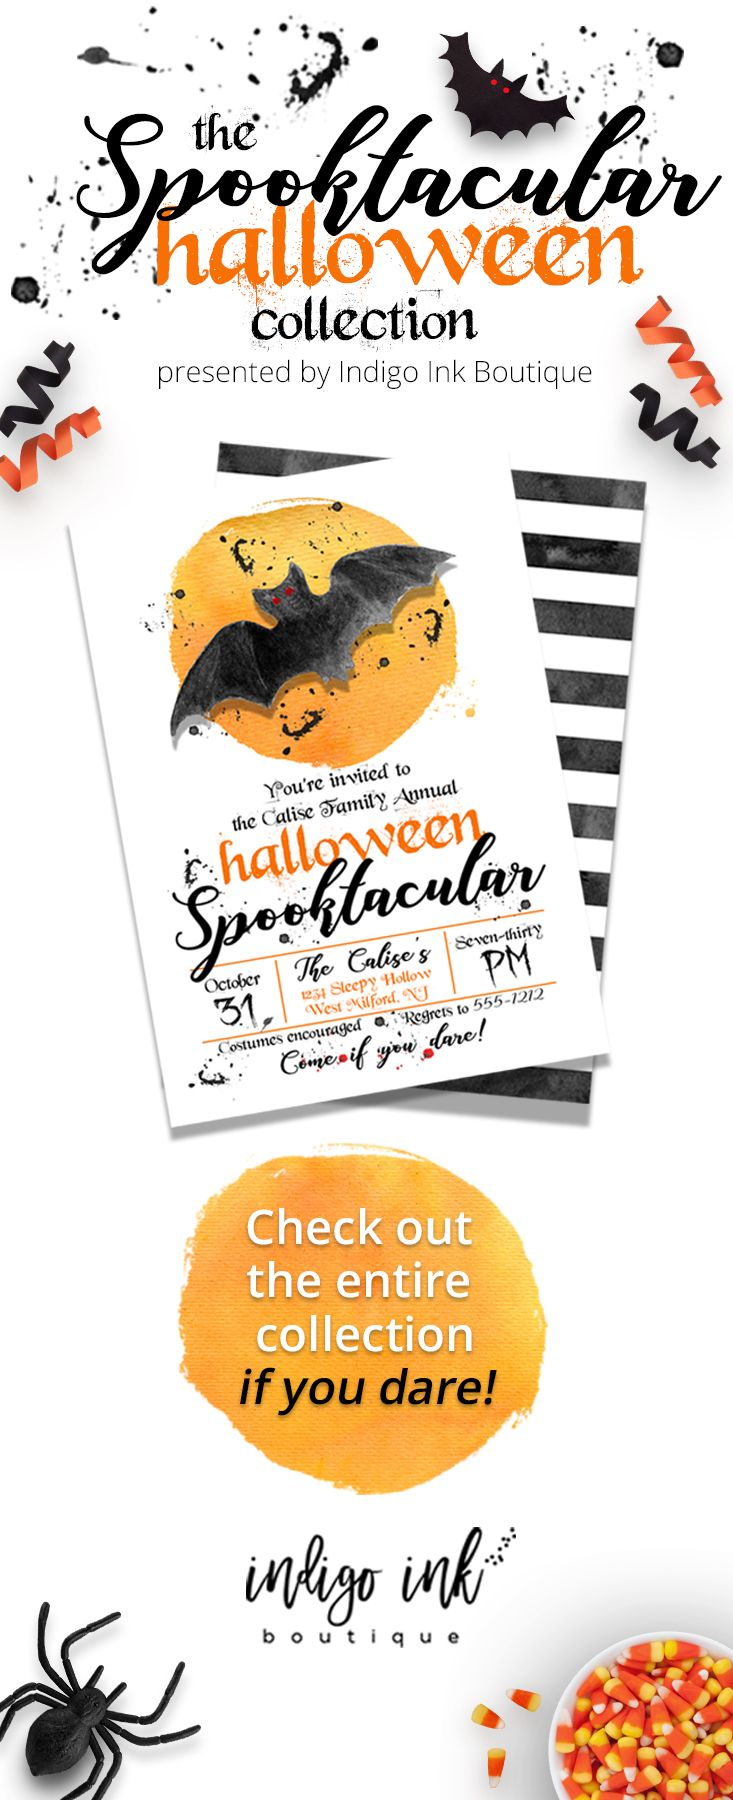 image regarding Halloween Invites Printable identify Halloween Invitation Printable Obtain Halloween Invite